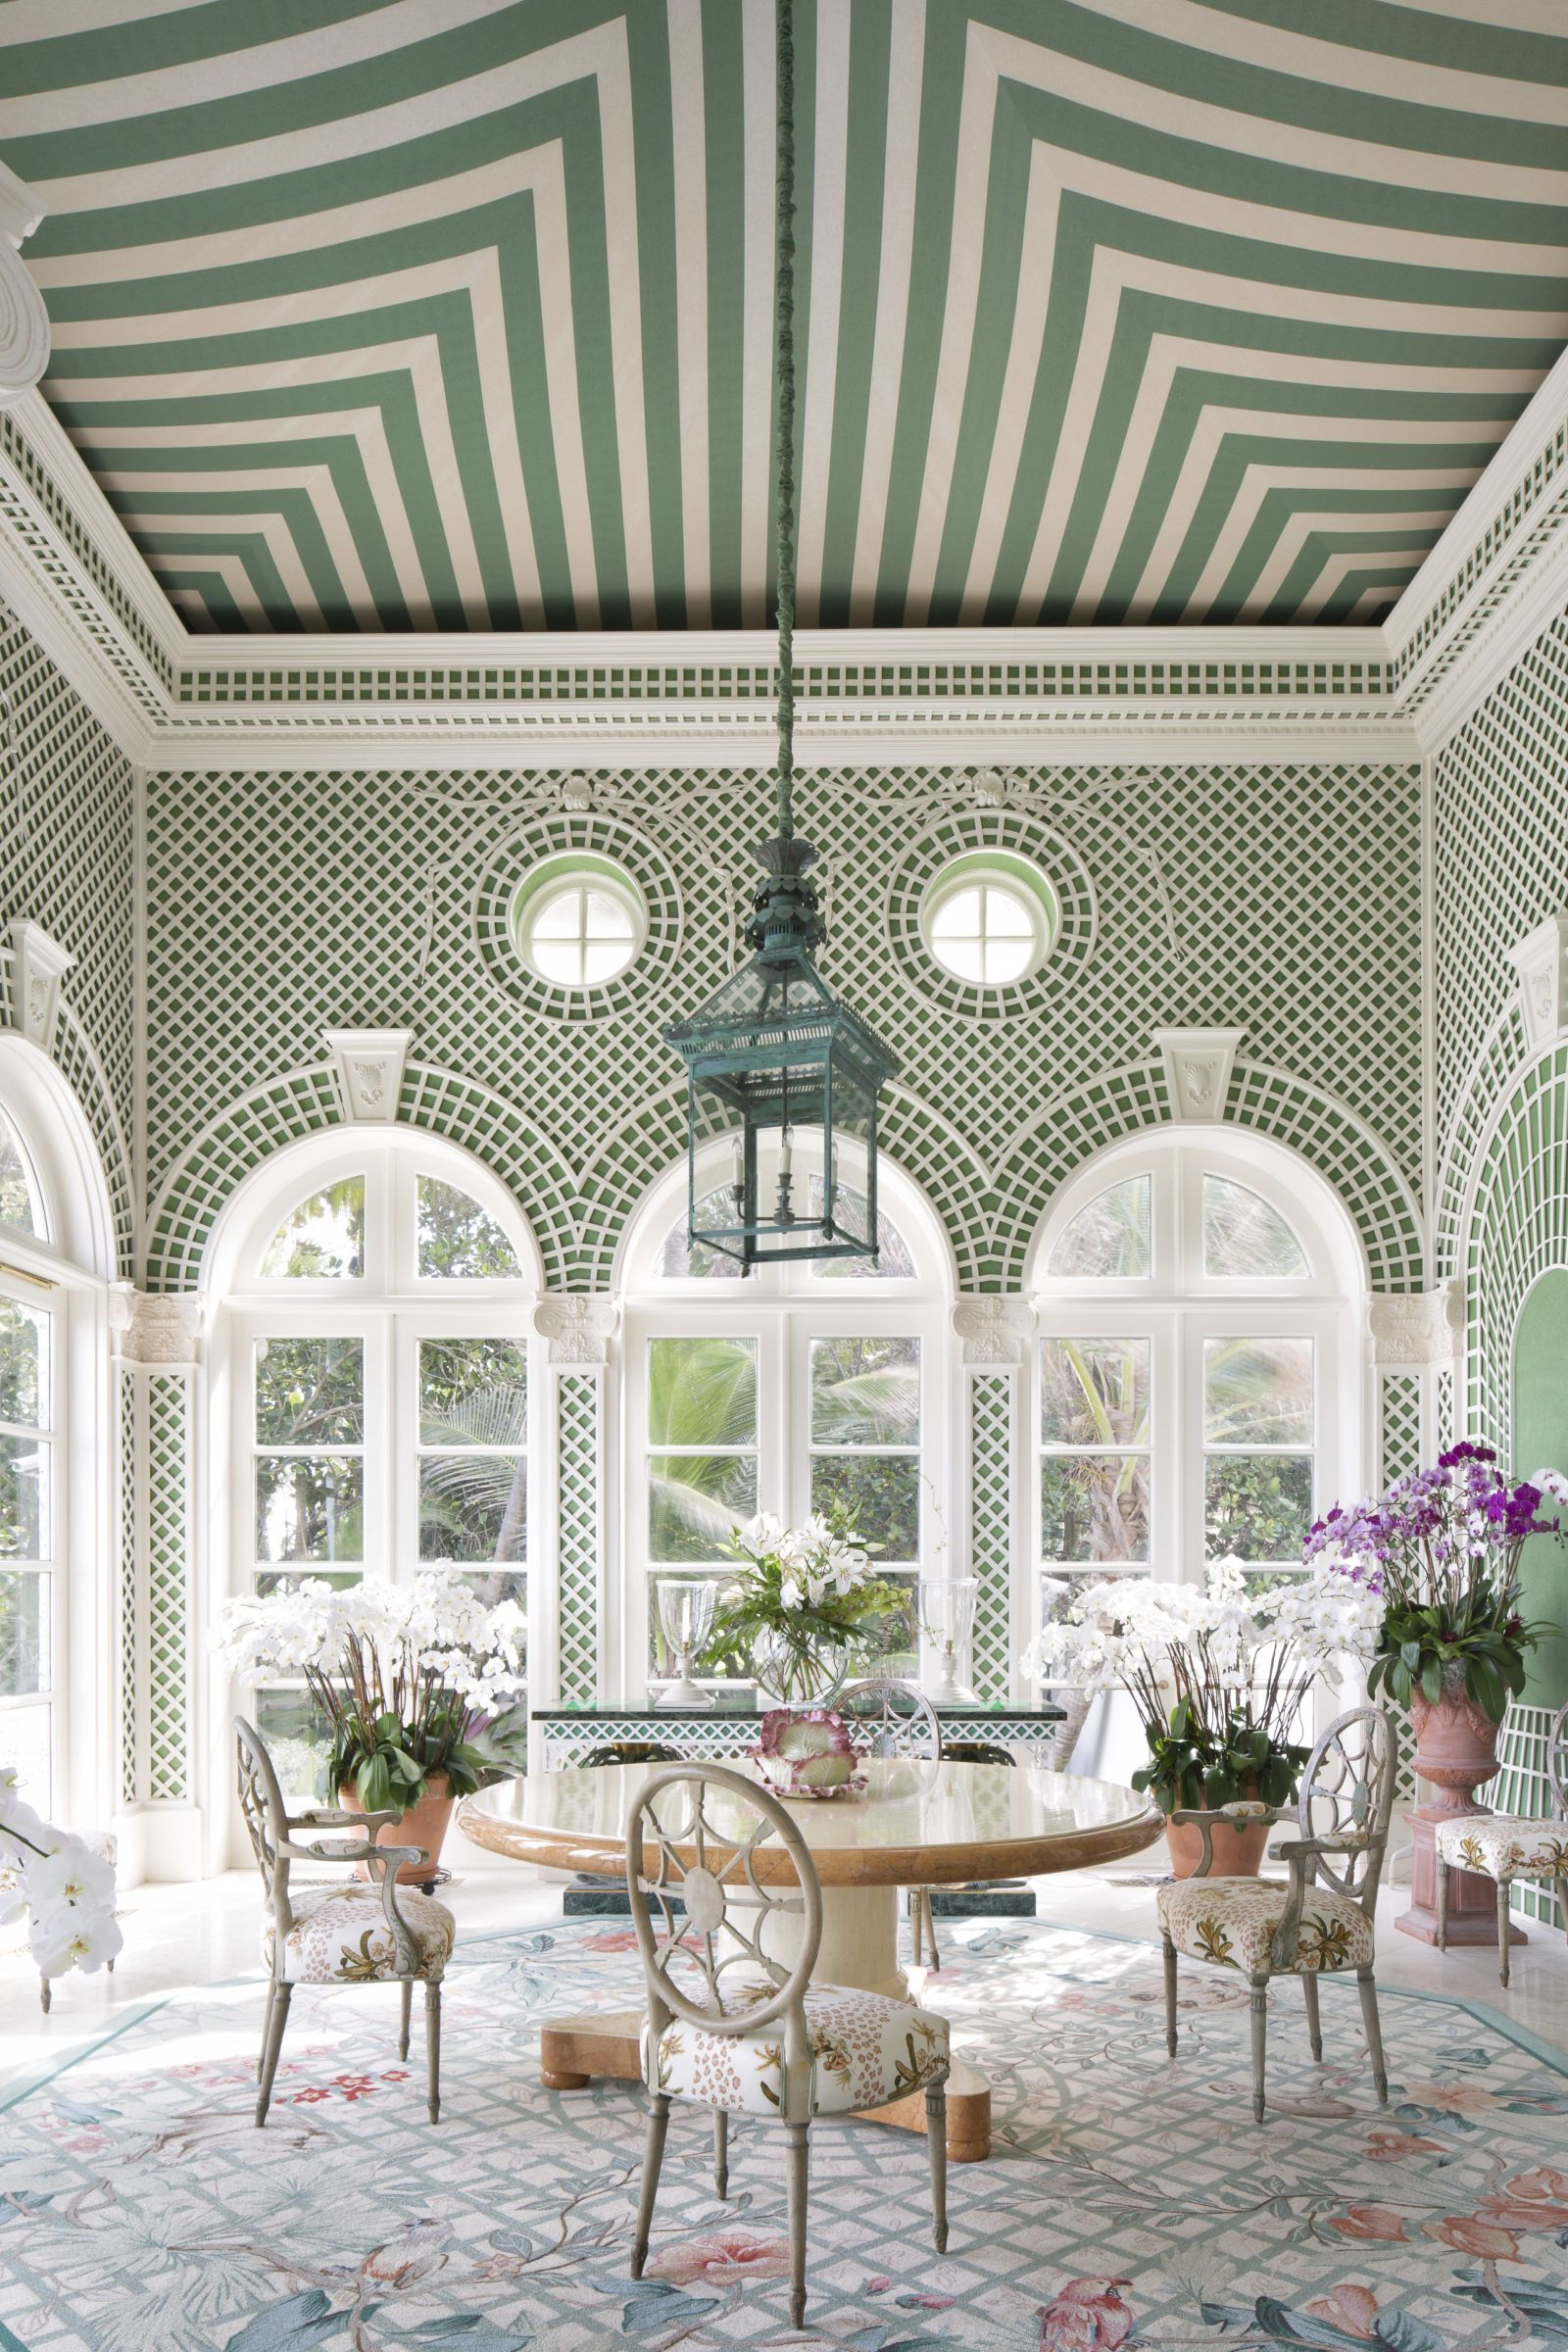 A Look Inside Some Of The Most Whimsical Homes In